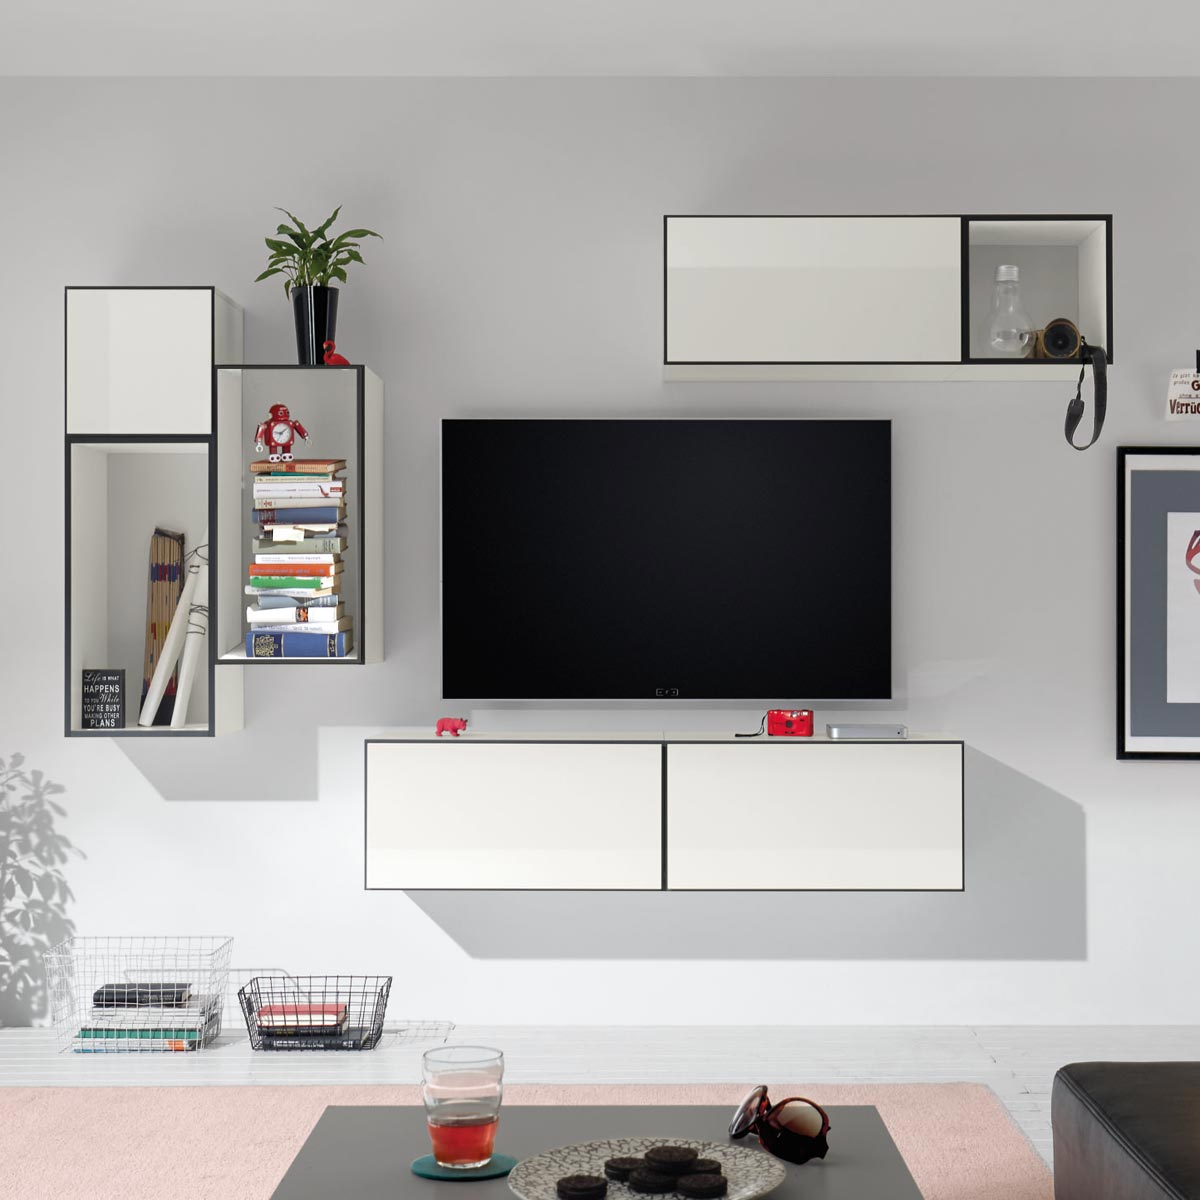 h lsta now to go kombination 2 mit 7 boxen schneewei. Black Bedroom Furniture Sets. Home Design Ideas